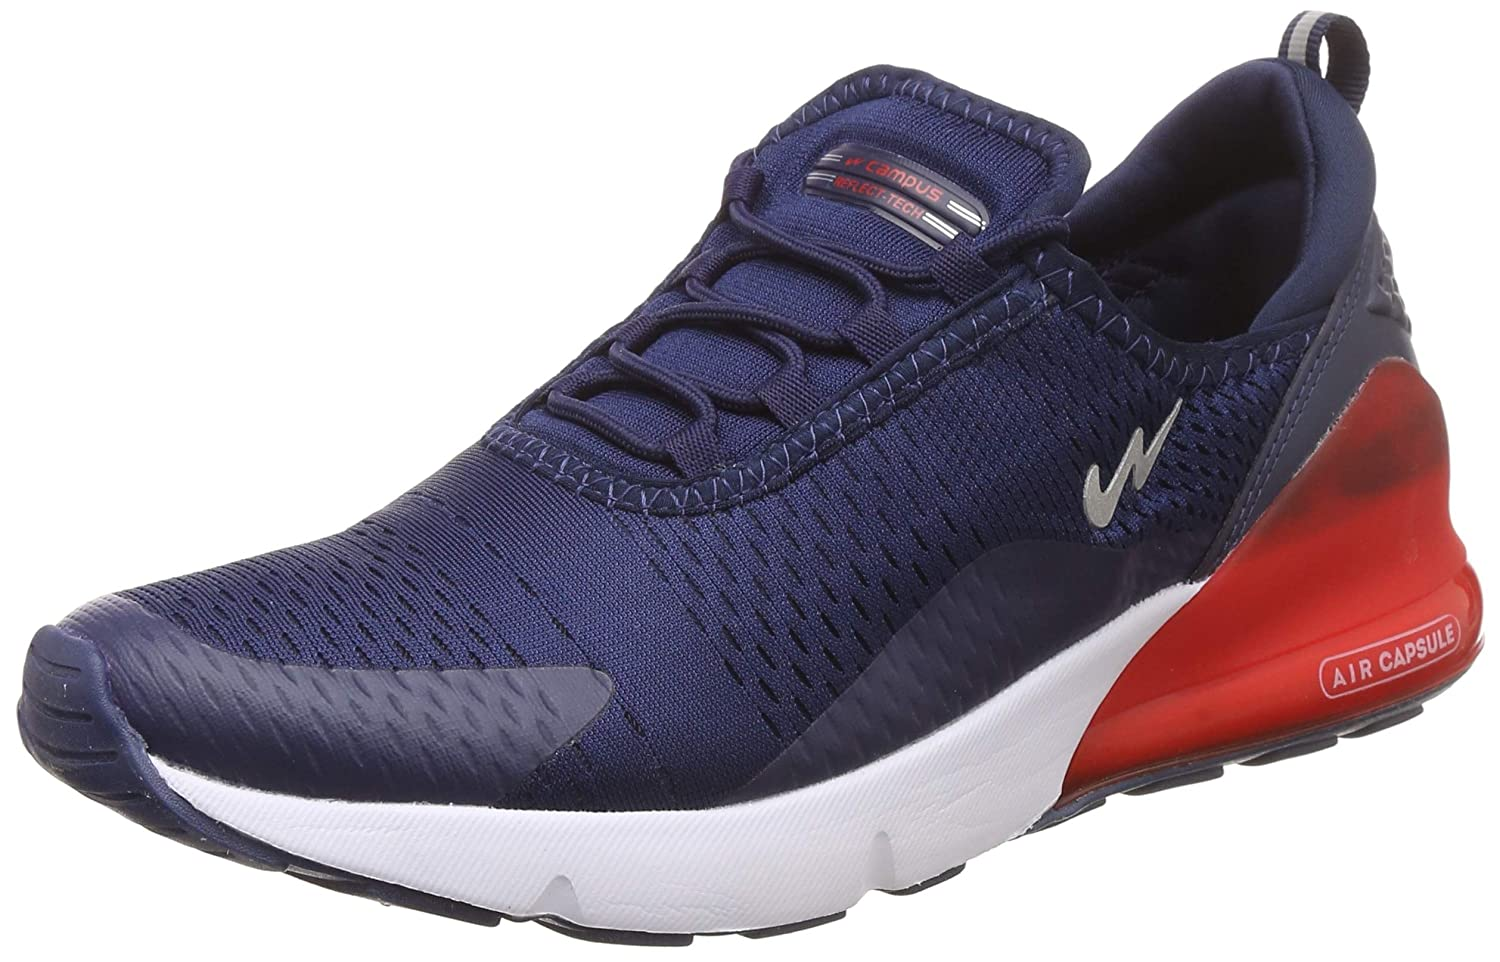 Campus Best Branded Running Shoes for Men in India 2019